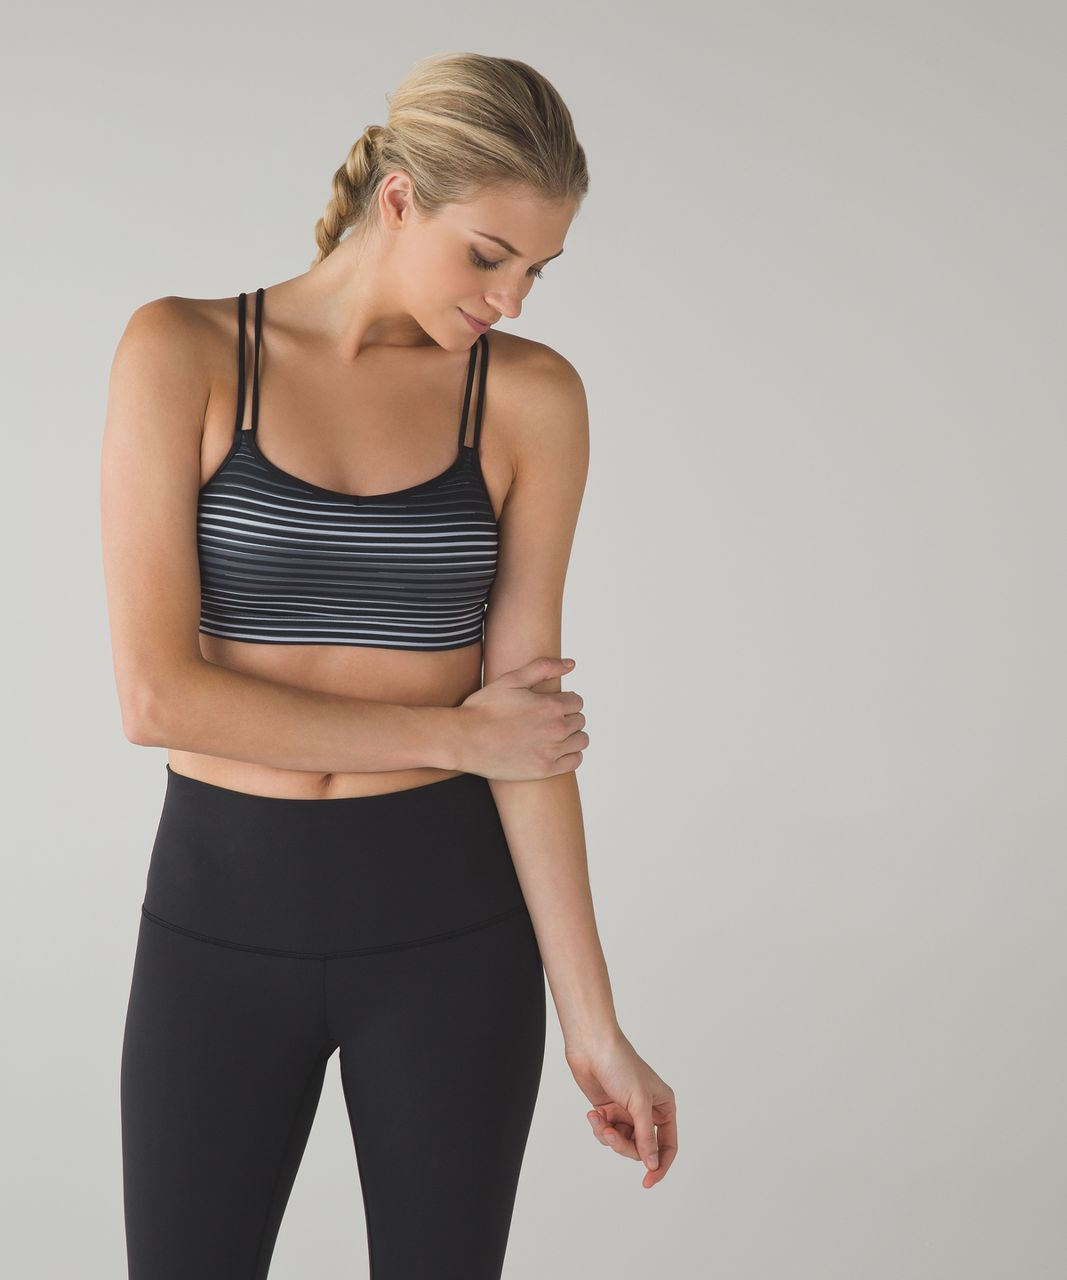 Lululemon Make A Move Bra - Twisted Dune Silver Fox Black / Black